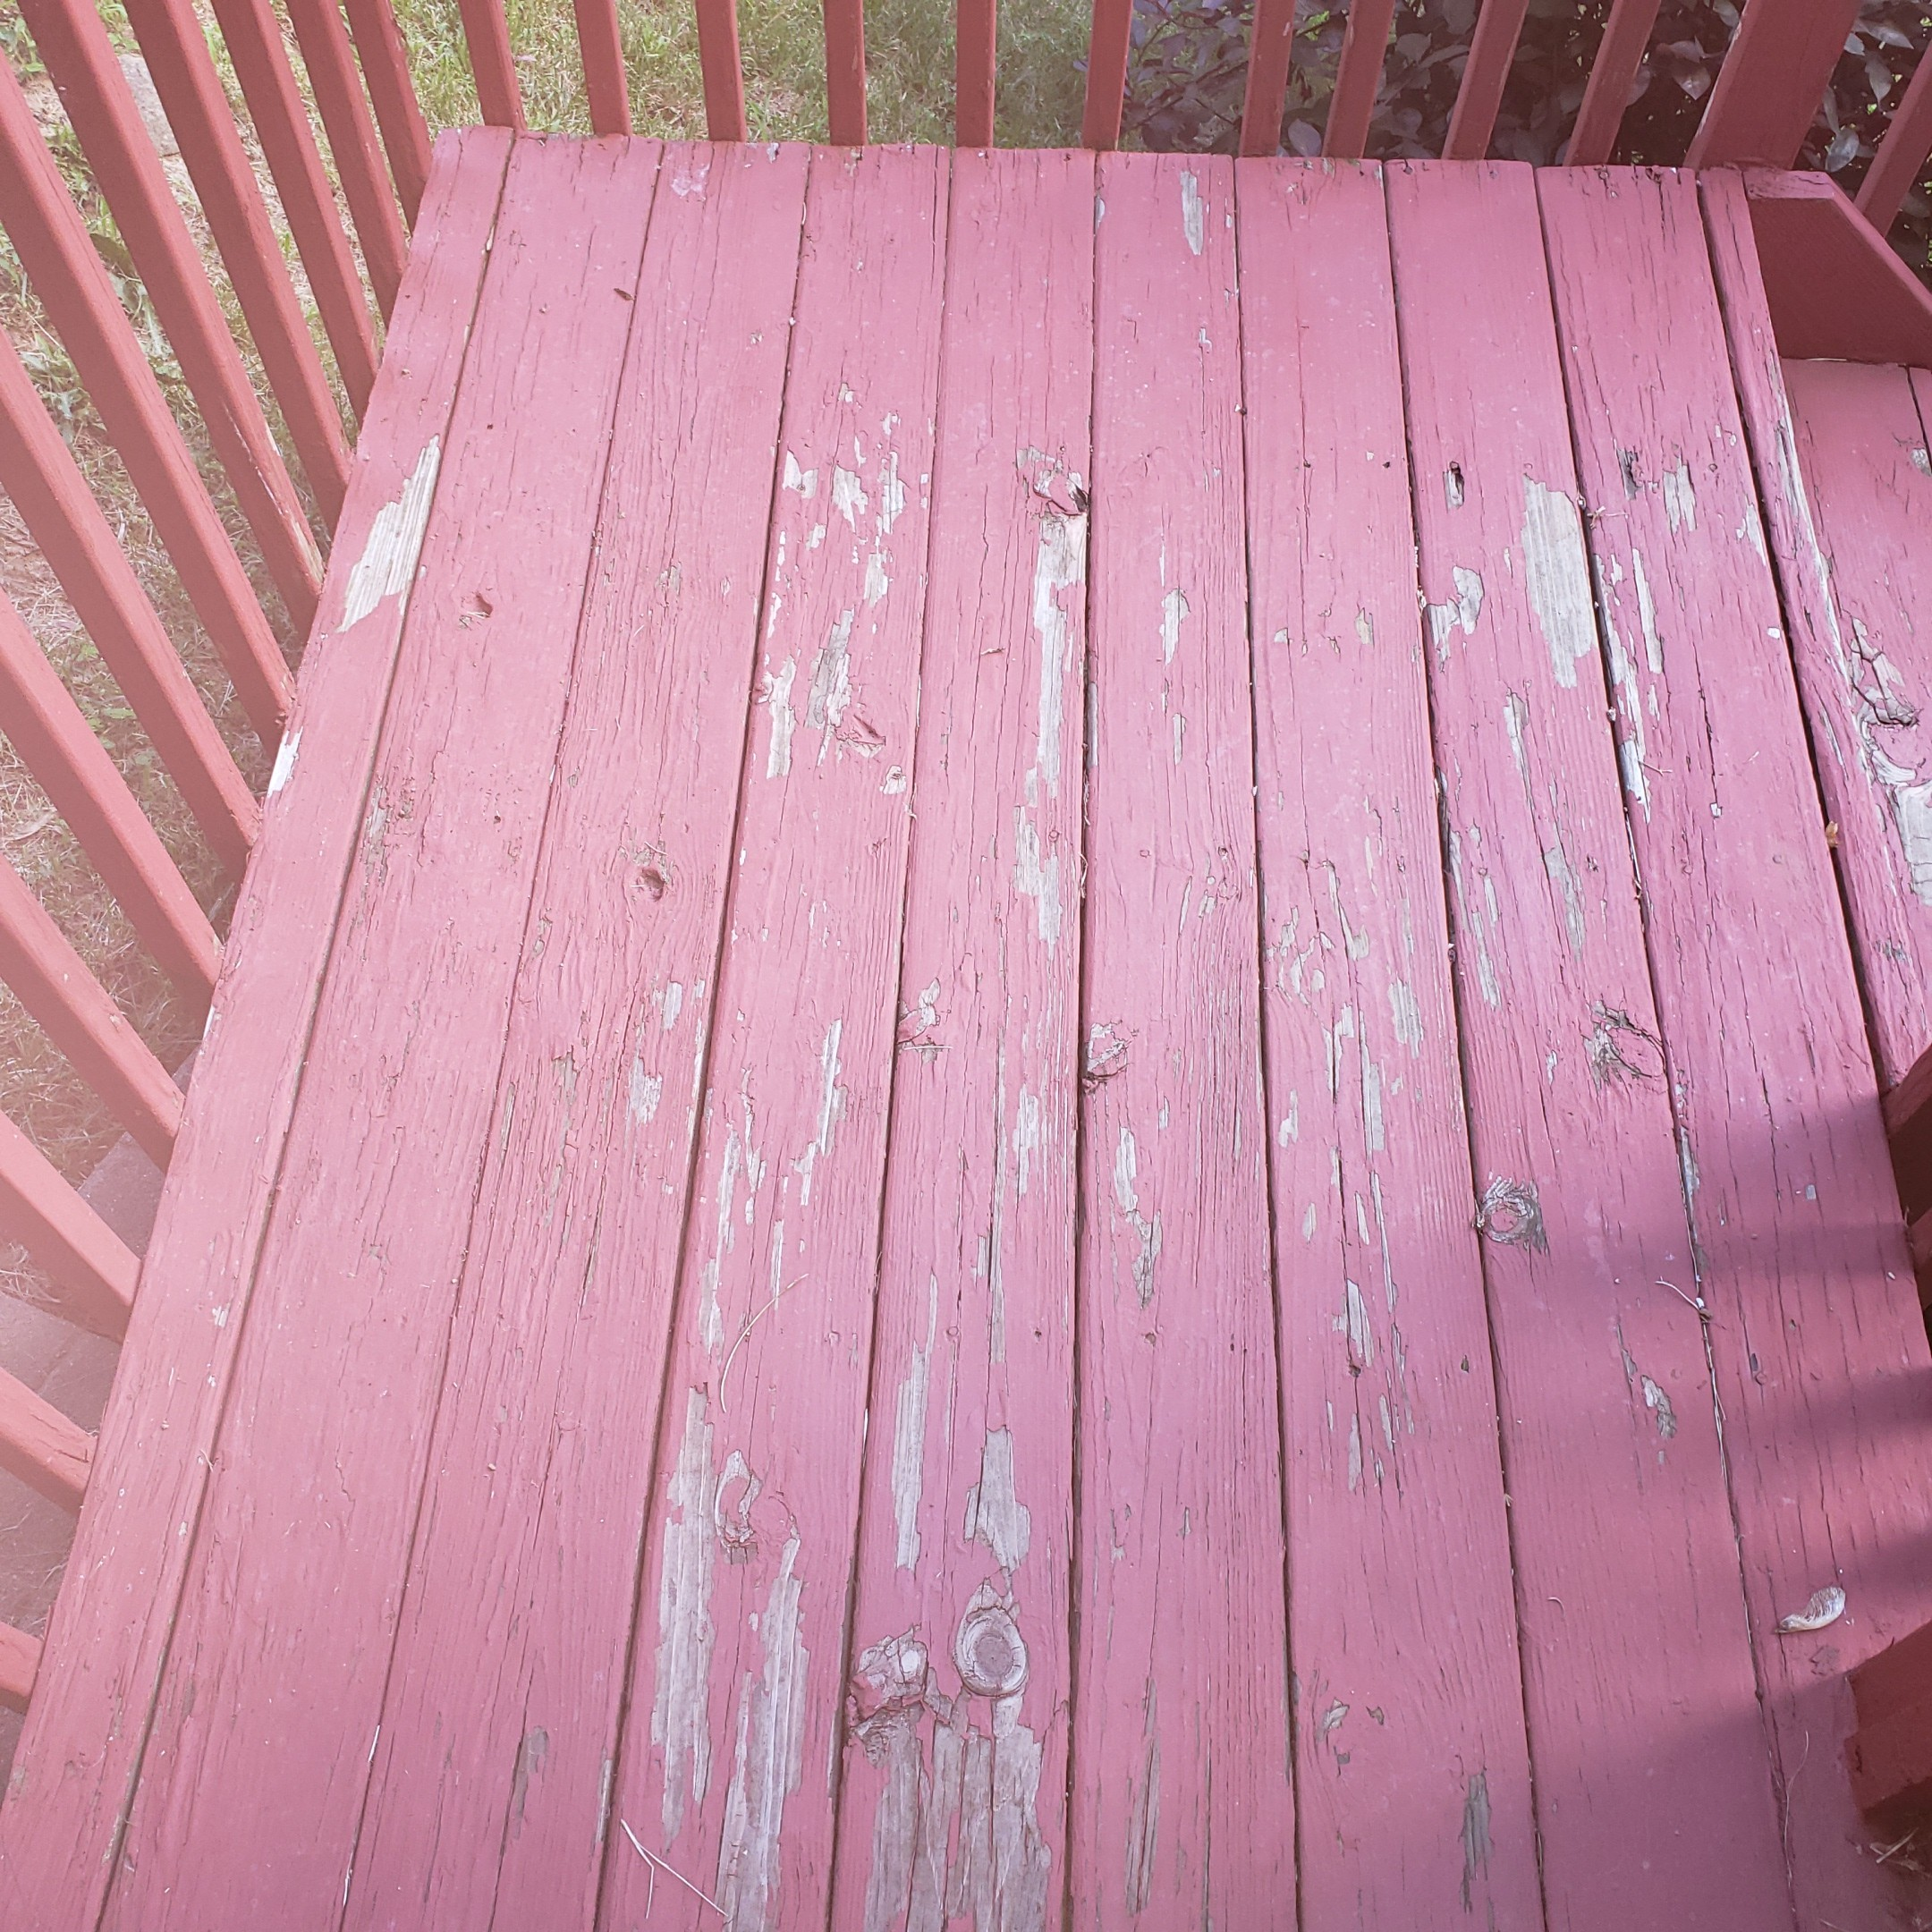 Behr Deckover Olympic Rescue It Rust Oleum Deck Re